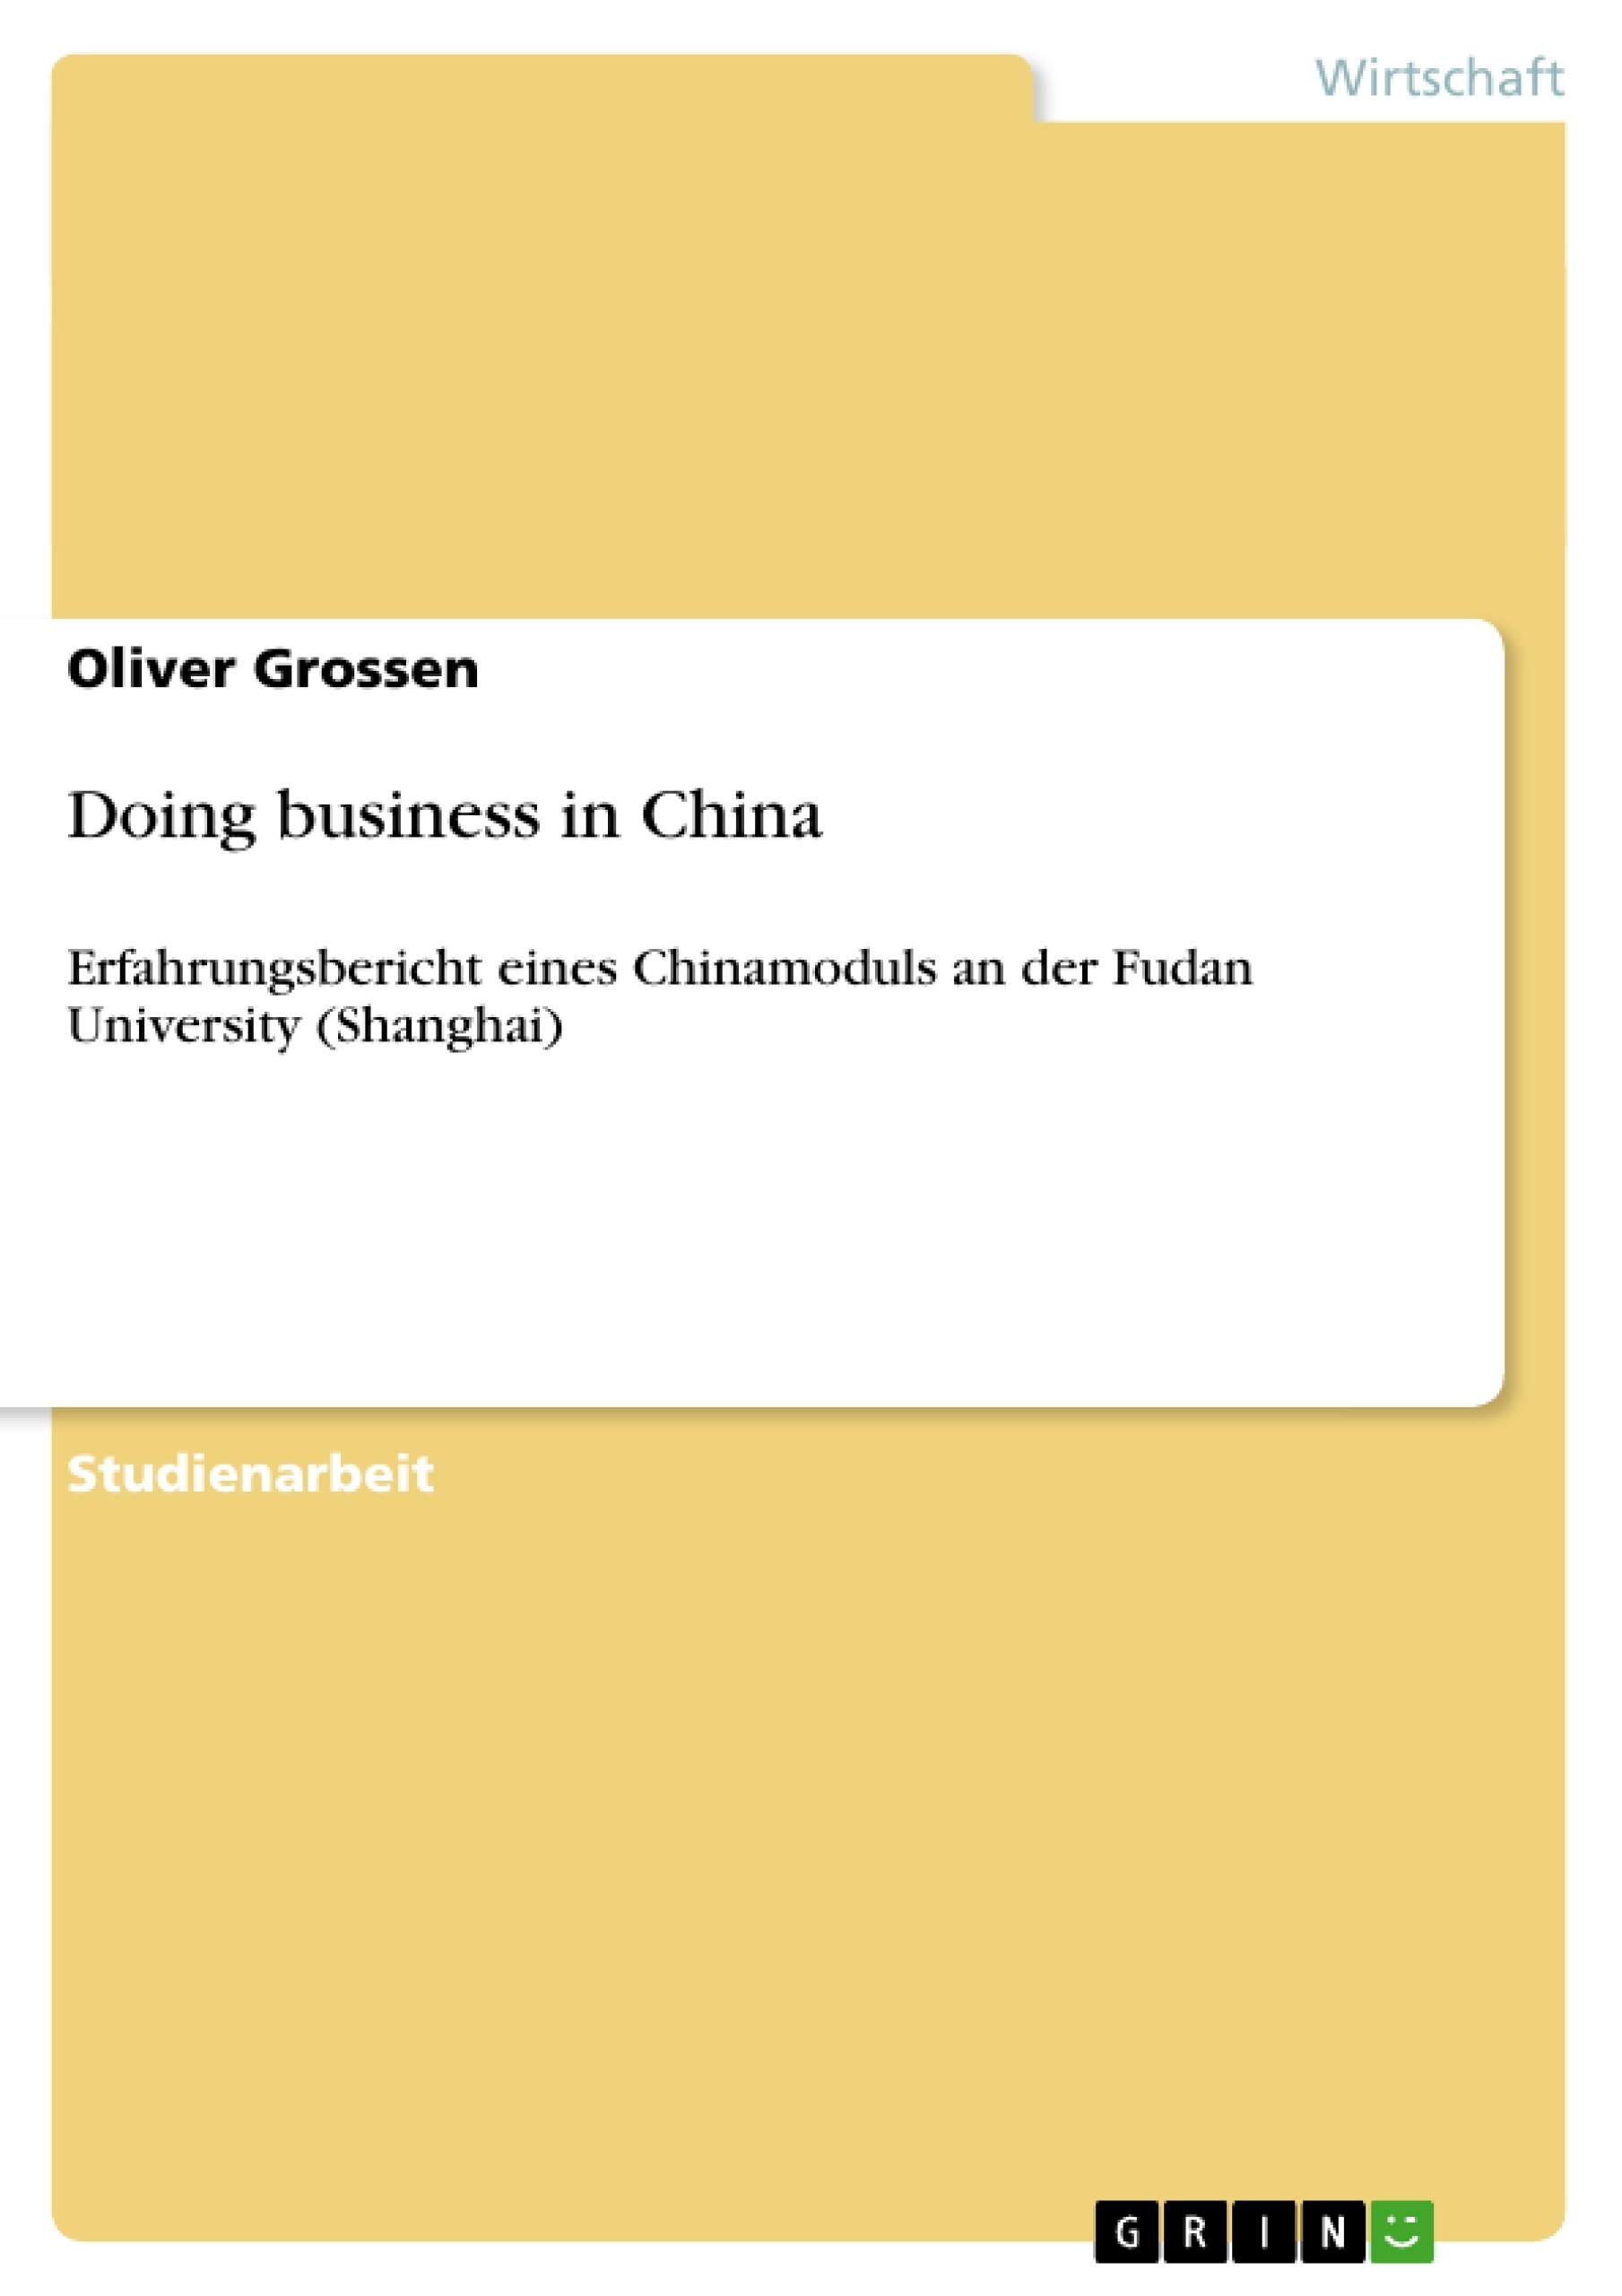 Titel: Doing business in China